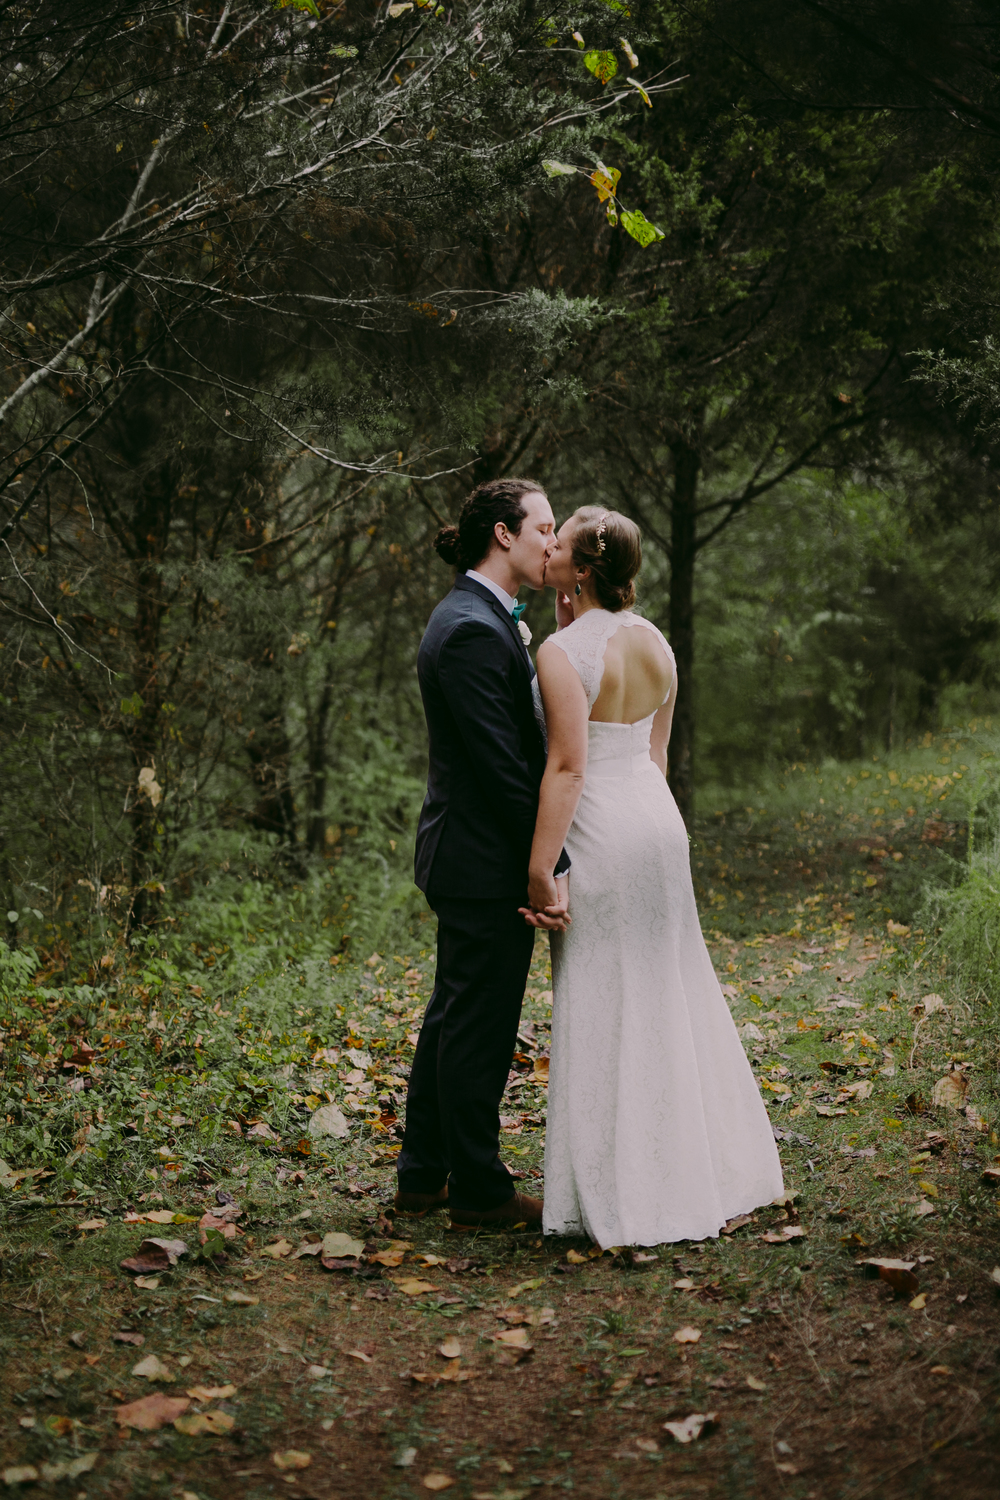 Cedarwood Wedding Photos Nashville Wedding Photographer (12 of 54).jpg